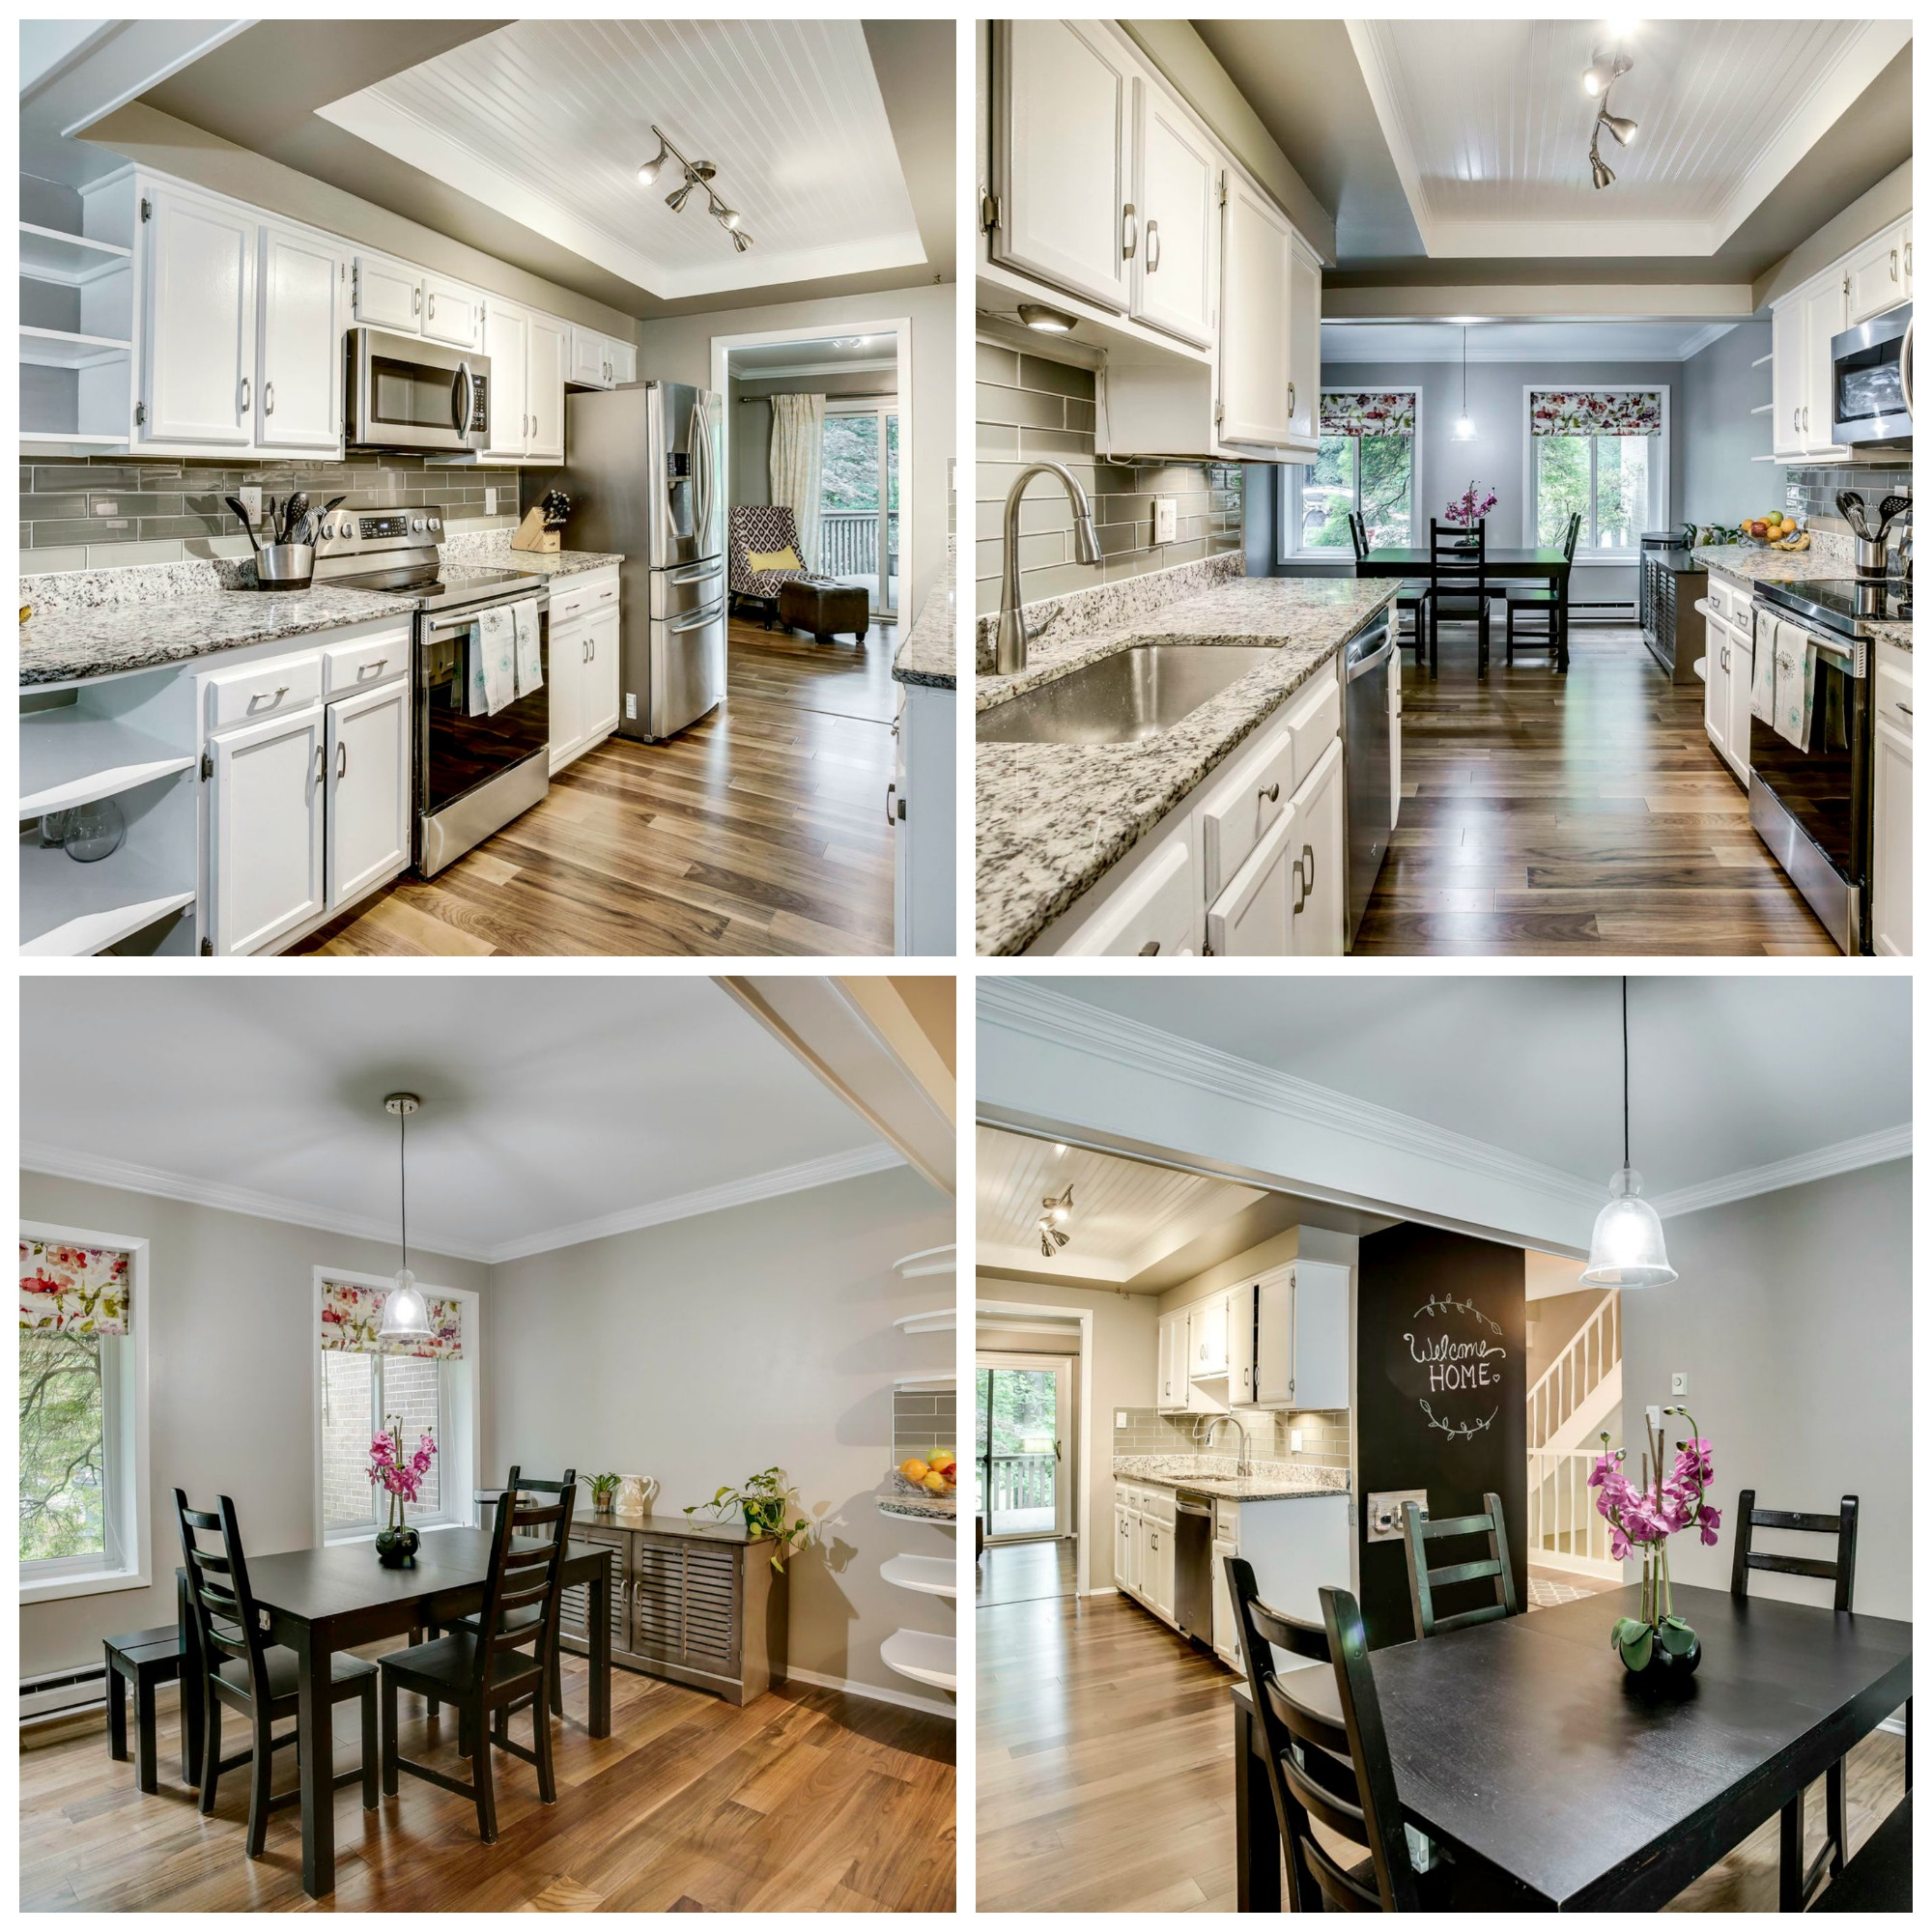 2160 Glencourse Ln, Reston- Kitchen